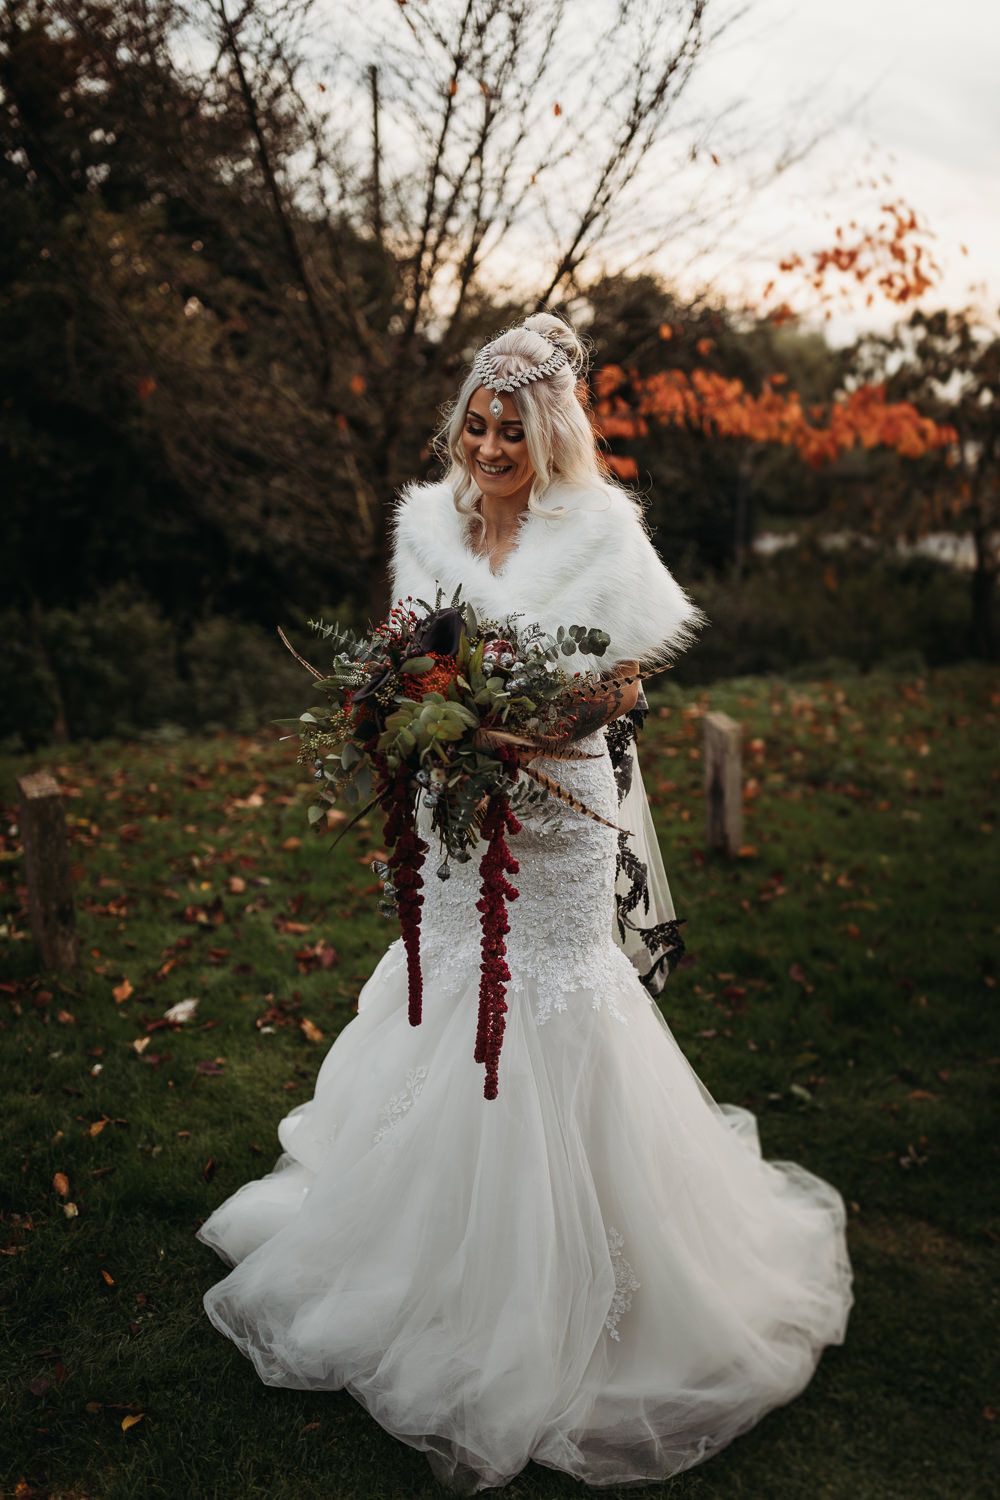 Bride Bridal Dress Gown Mermaid Train Lace Cover Up Cooling Castle Barn Wedding Thyme Lane Photography